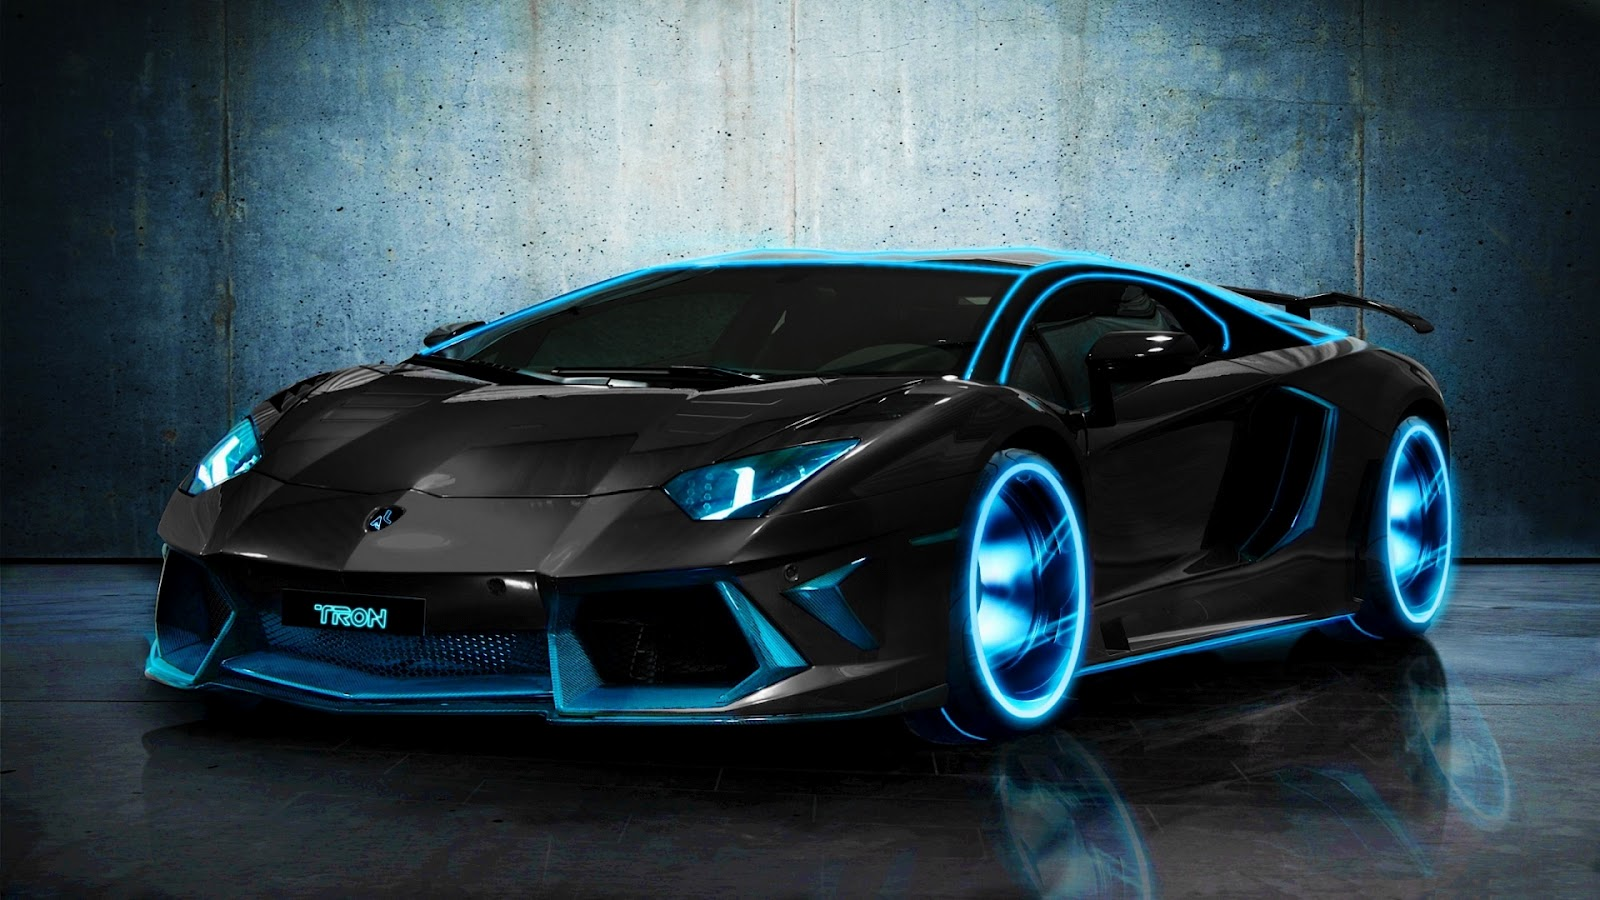 Aventador HD car wallpapers download D i g g I m a g e 1600x900